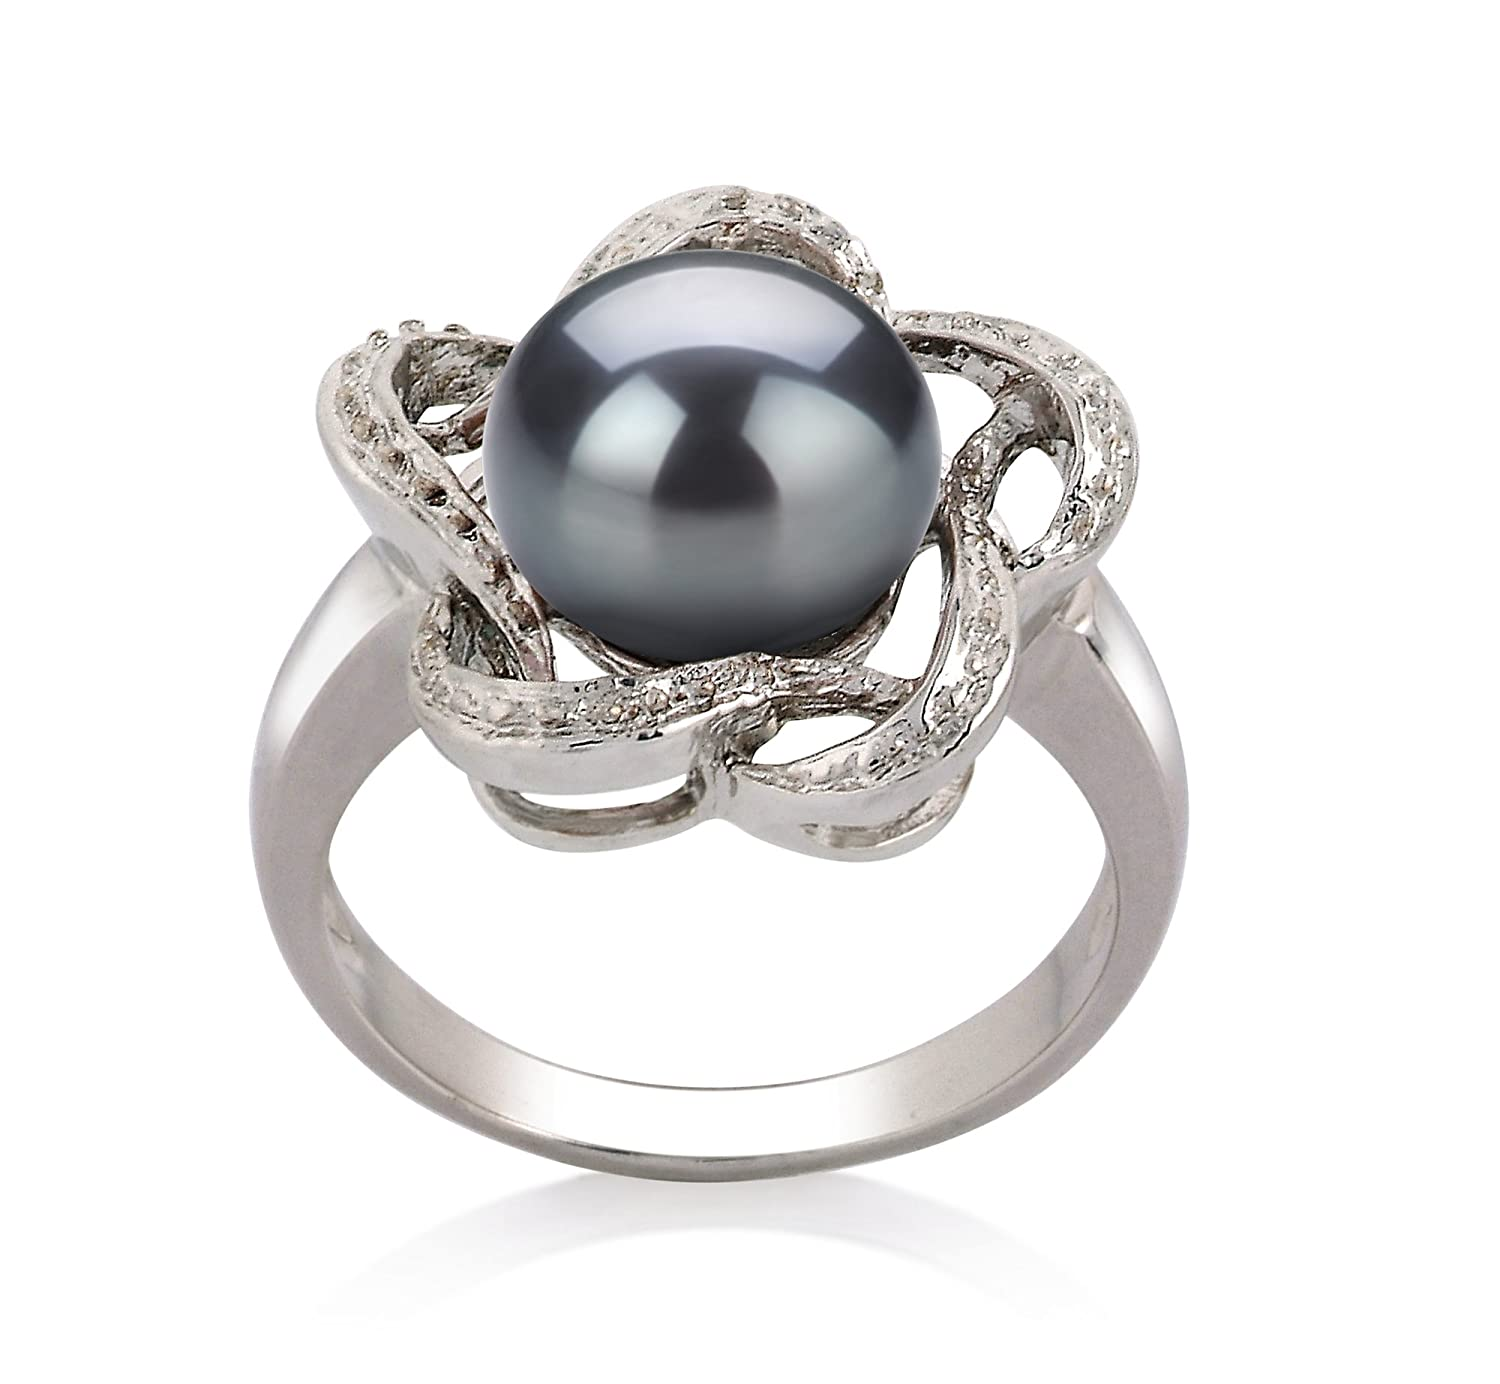 Black 9-10mm AA Quality Freshwater 925 Sterling Silver Cultured Pearl Ring